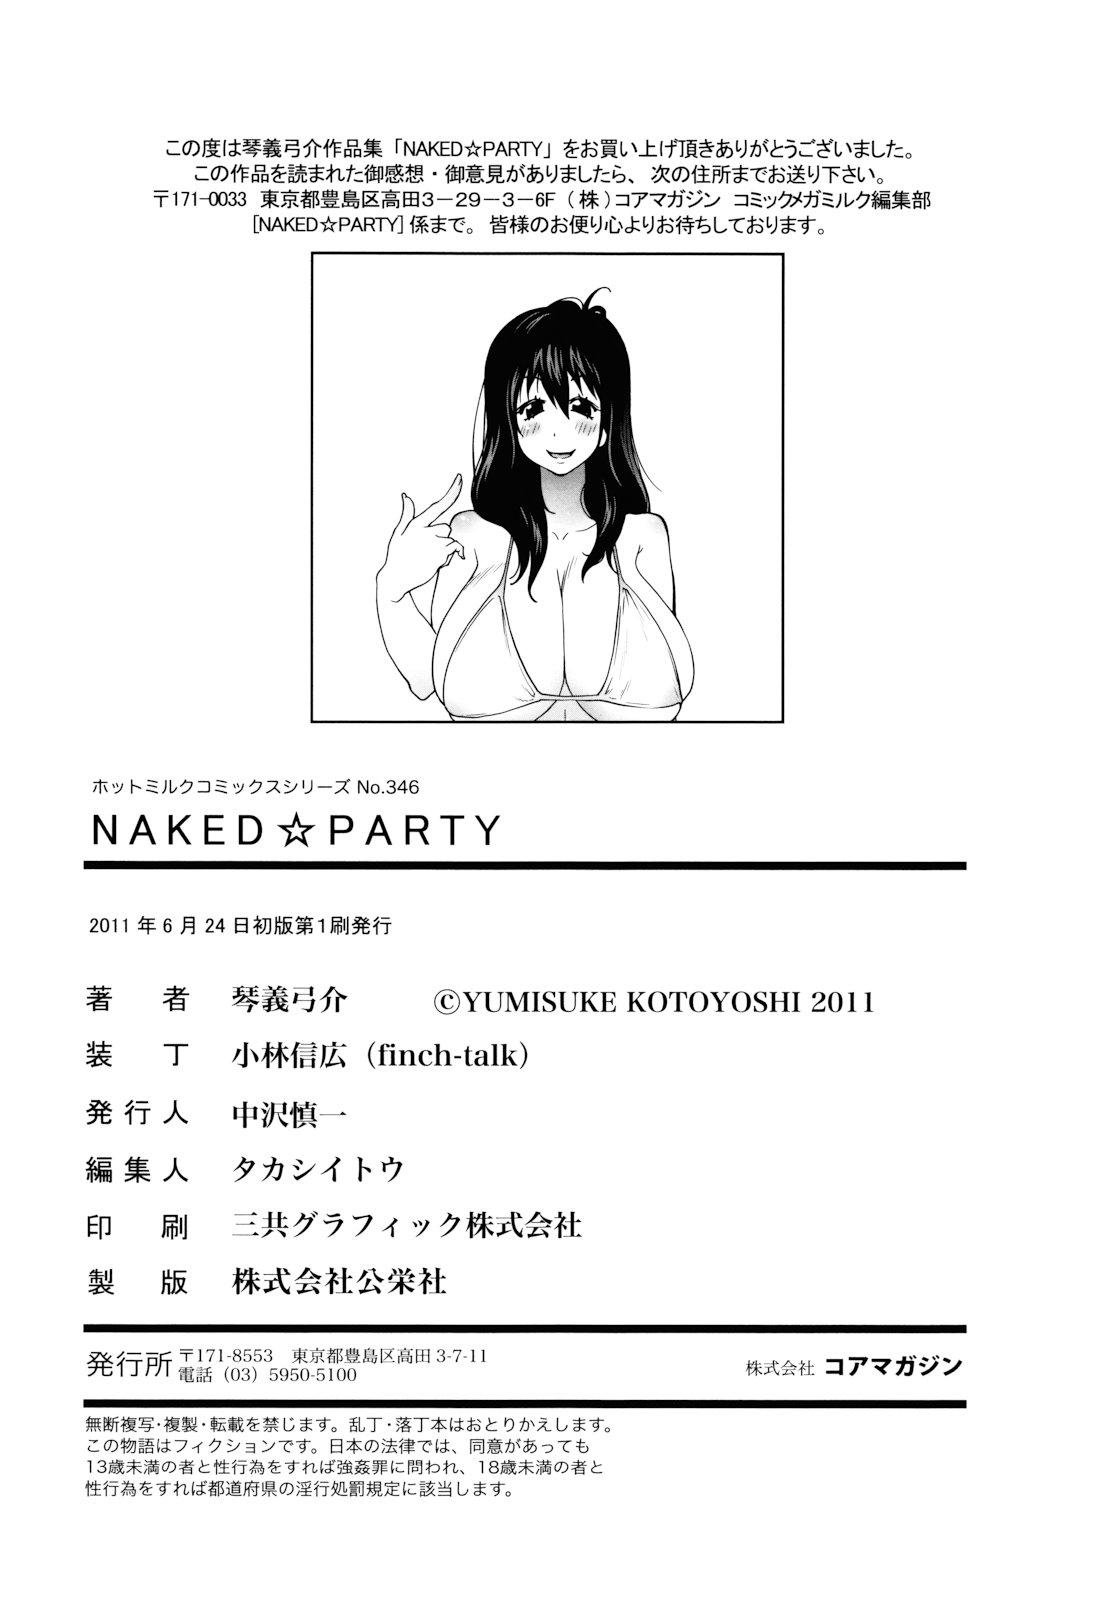 NAKED PARTY 189